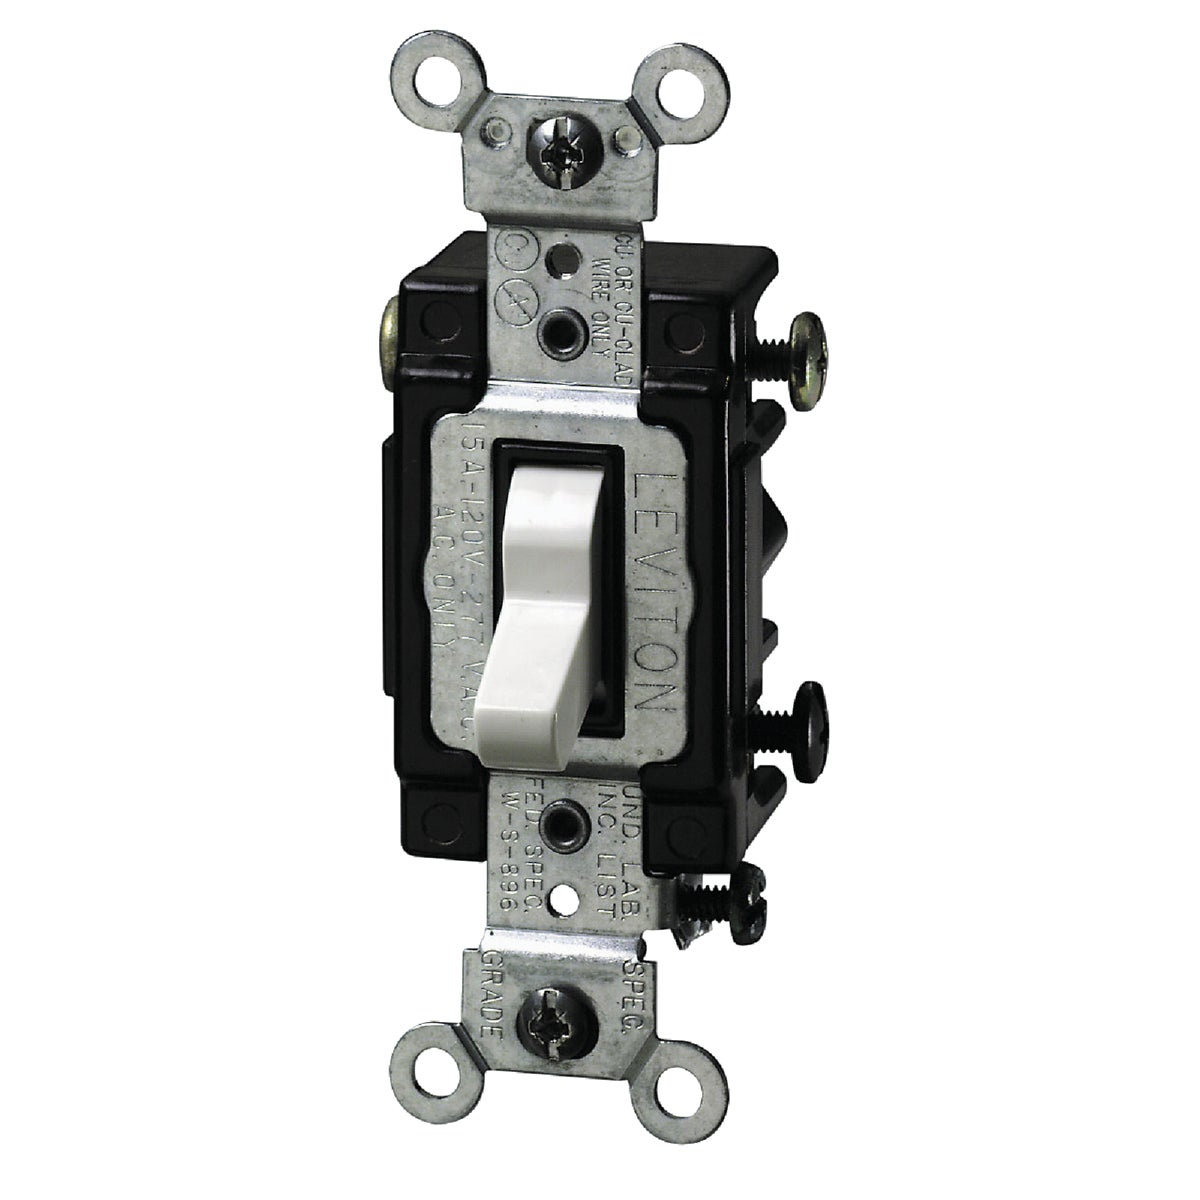 WHT 3-WAY LTD SWITCH - S02-5503-LHW by Leviton Mfg Co